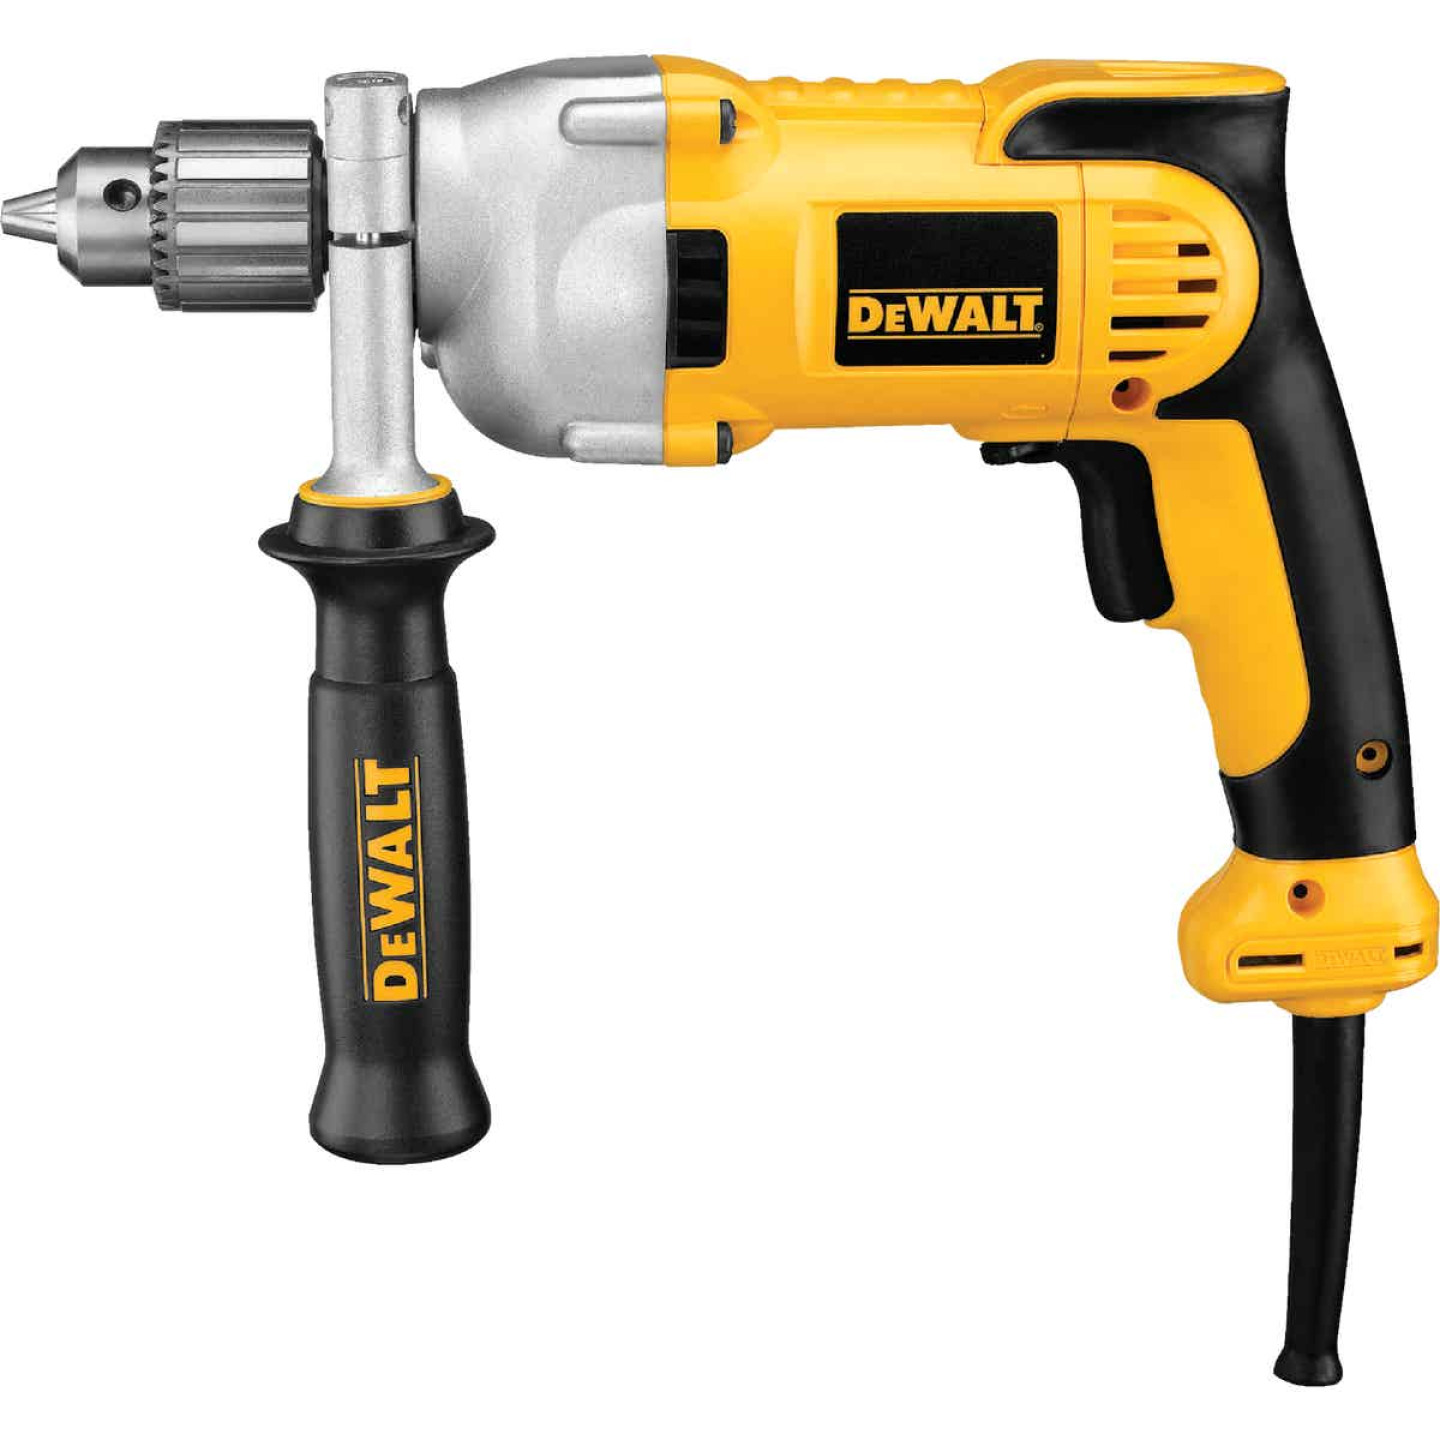 DeWalt 1/2 In. 10-Amp Keyed Electric Drill with Pistol Grip Image 1